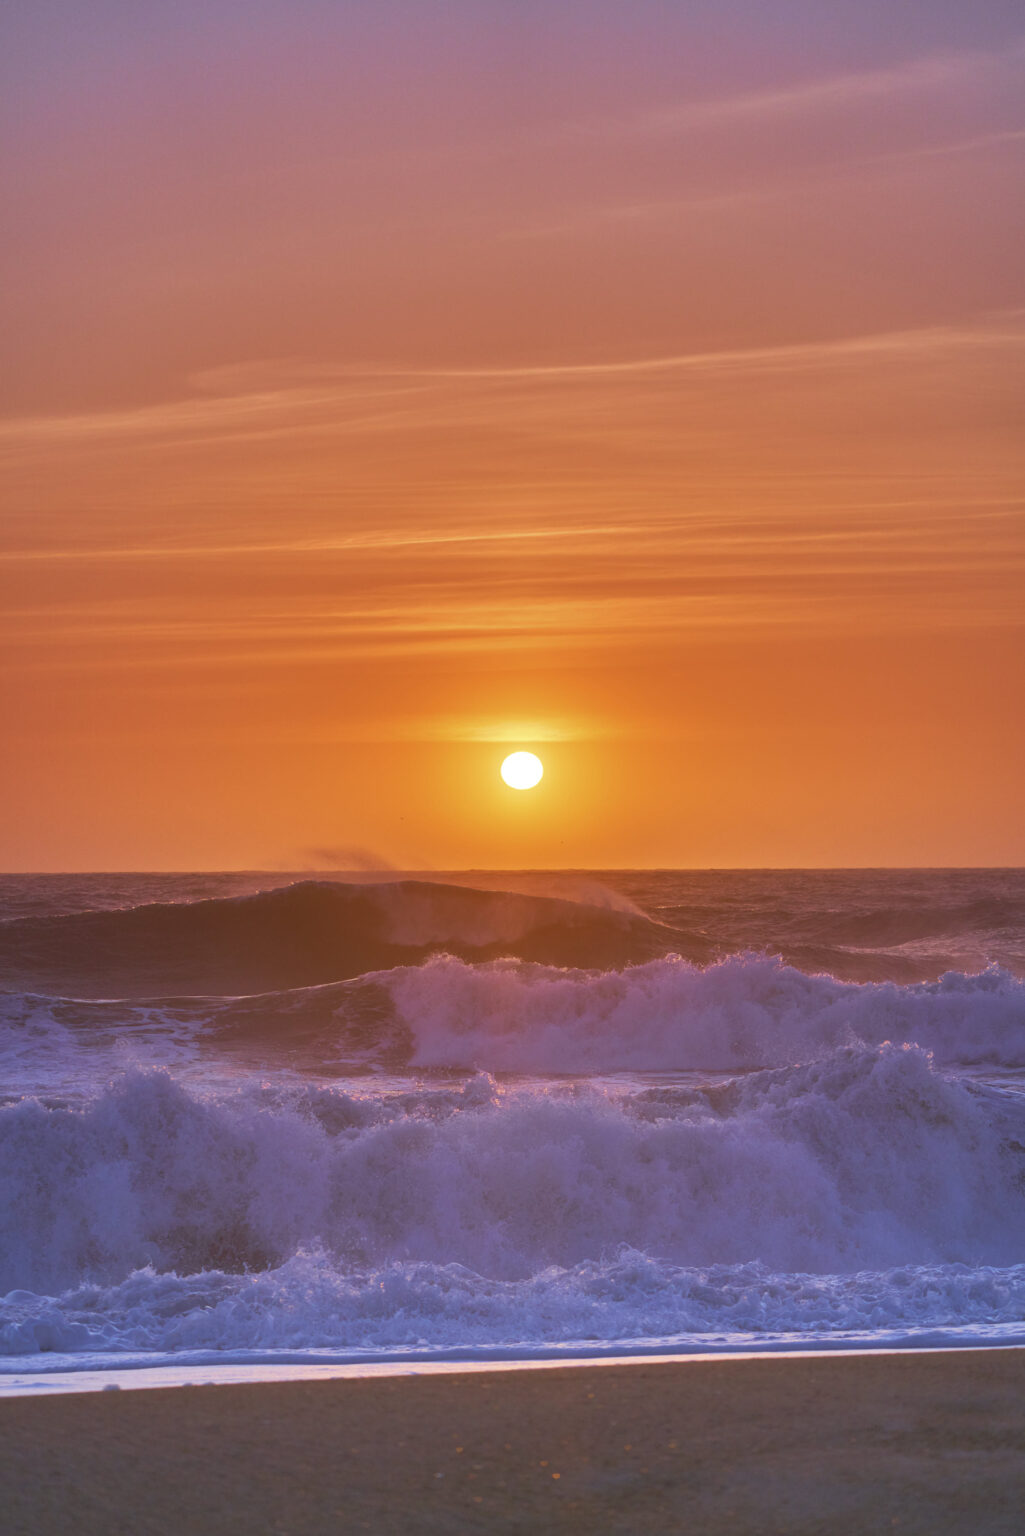 Sun setting on Nazare Beach as the surf crashes in